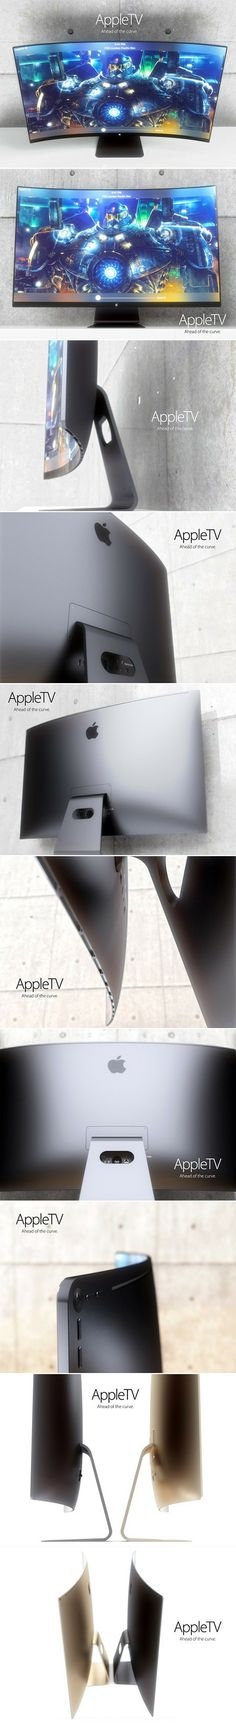 Here are some leaked pictures of the all-new Apple TV display.